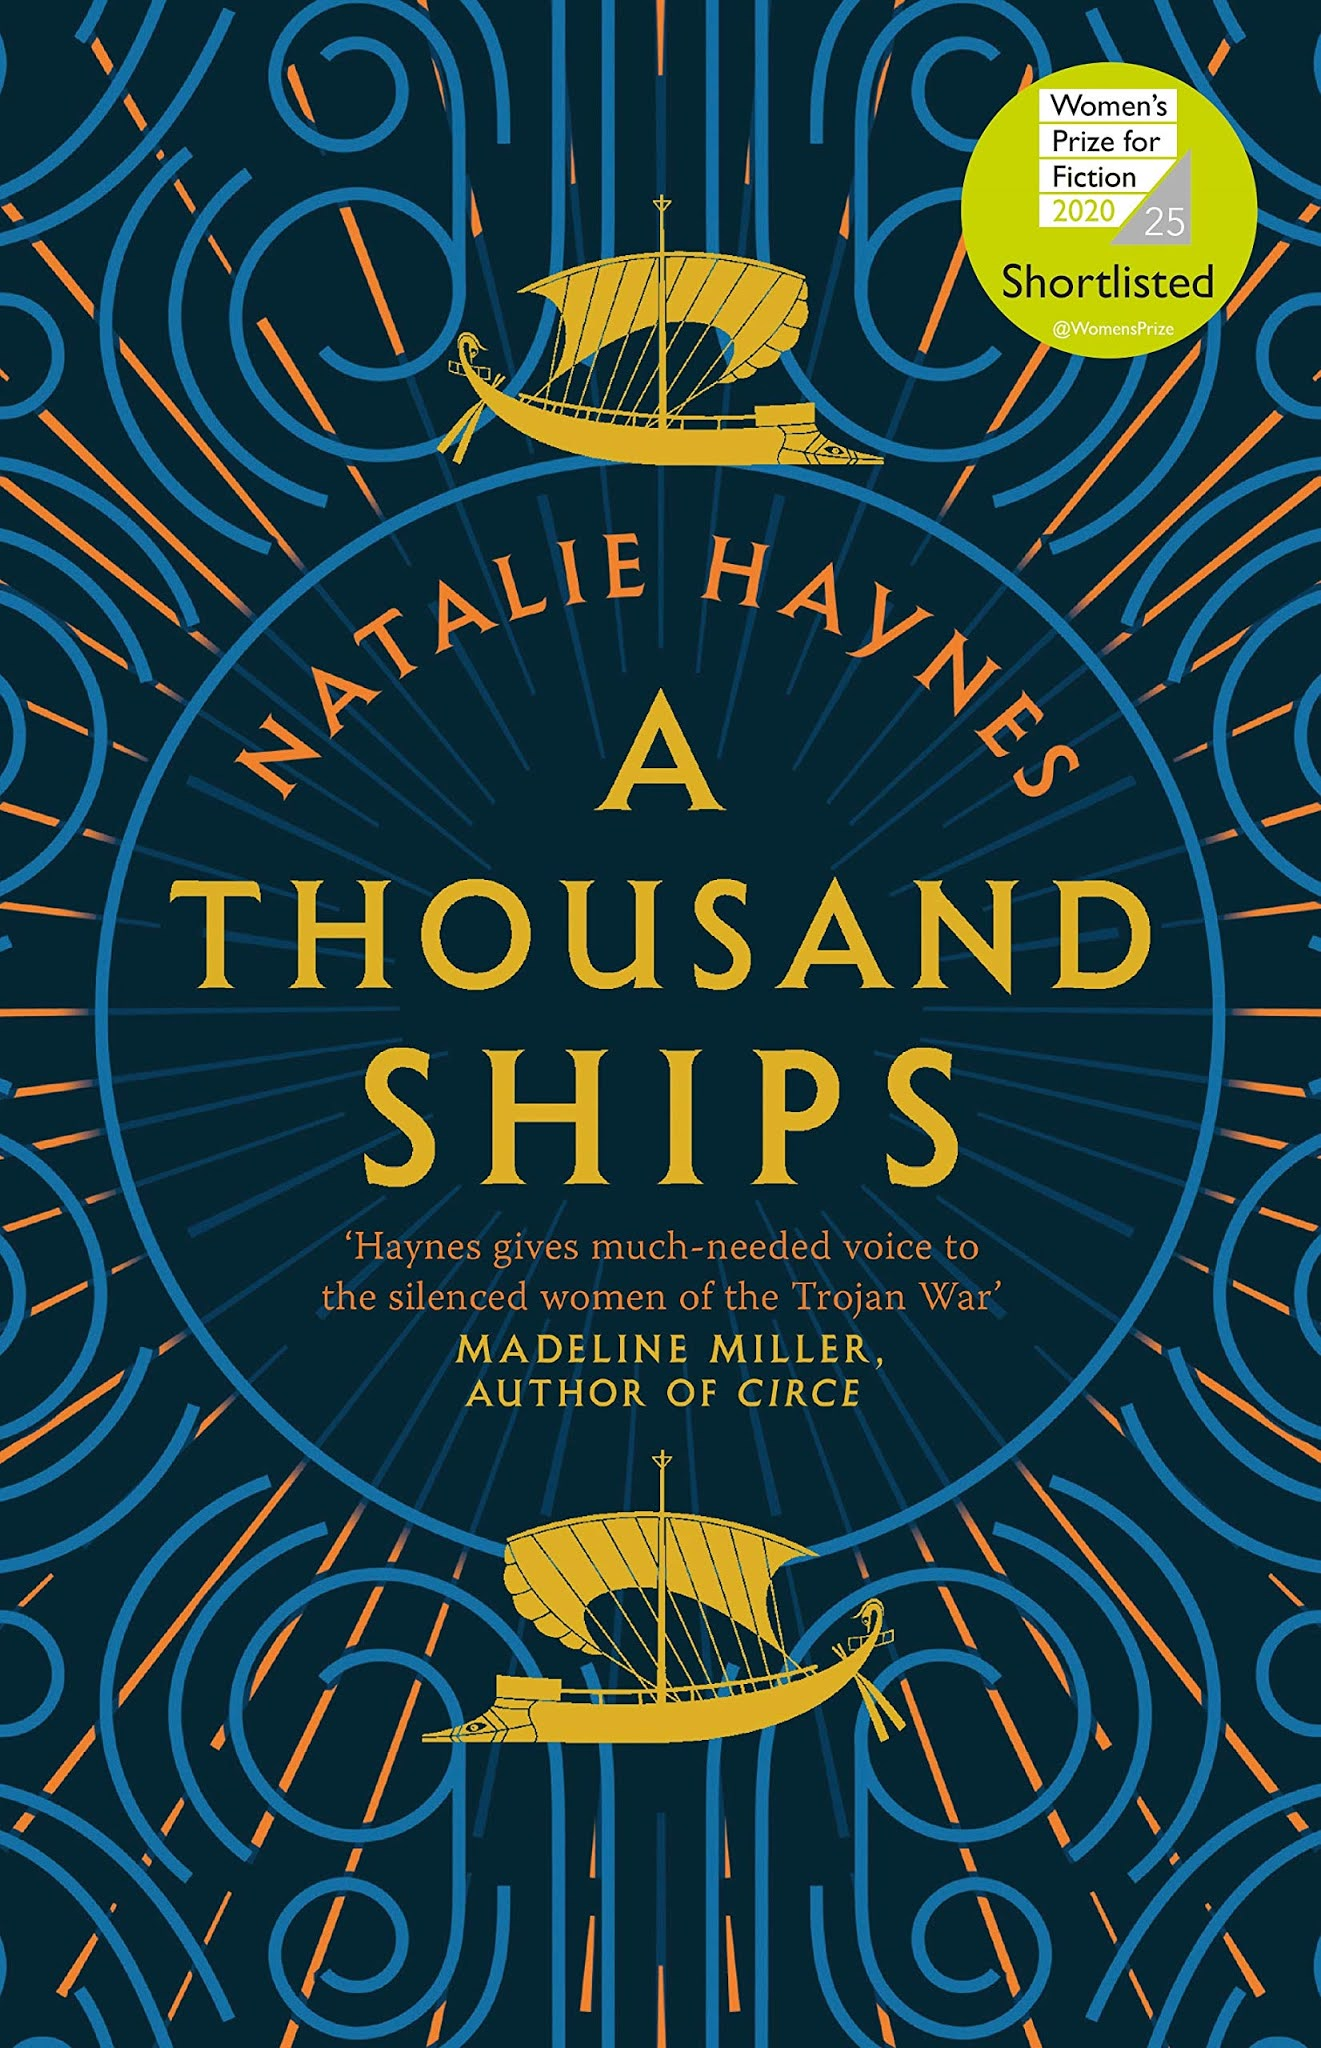 Book cover for A Thousand Ships by Natalie Haynes A Thousand Ships in the South Manchester, Chorlton, Cheadle, Fallowfield, Burnage, Levenshulme, Heaton Moor, Heaton Mersey, Heaton Norris, Heaton Chapel, Northenden, and Didsbury book group